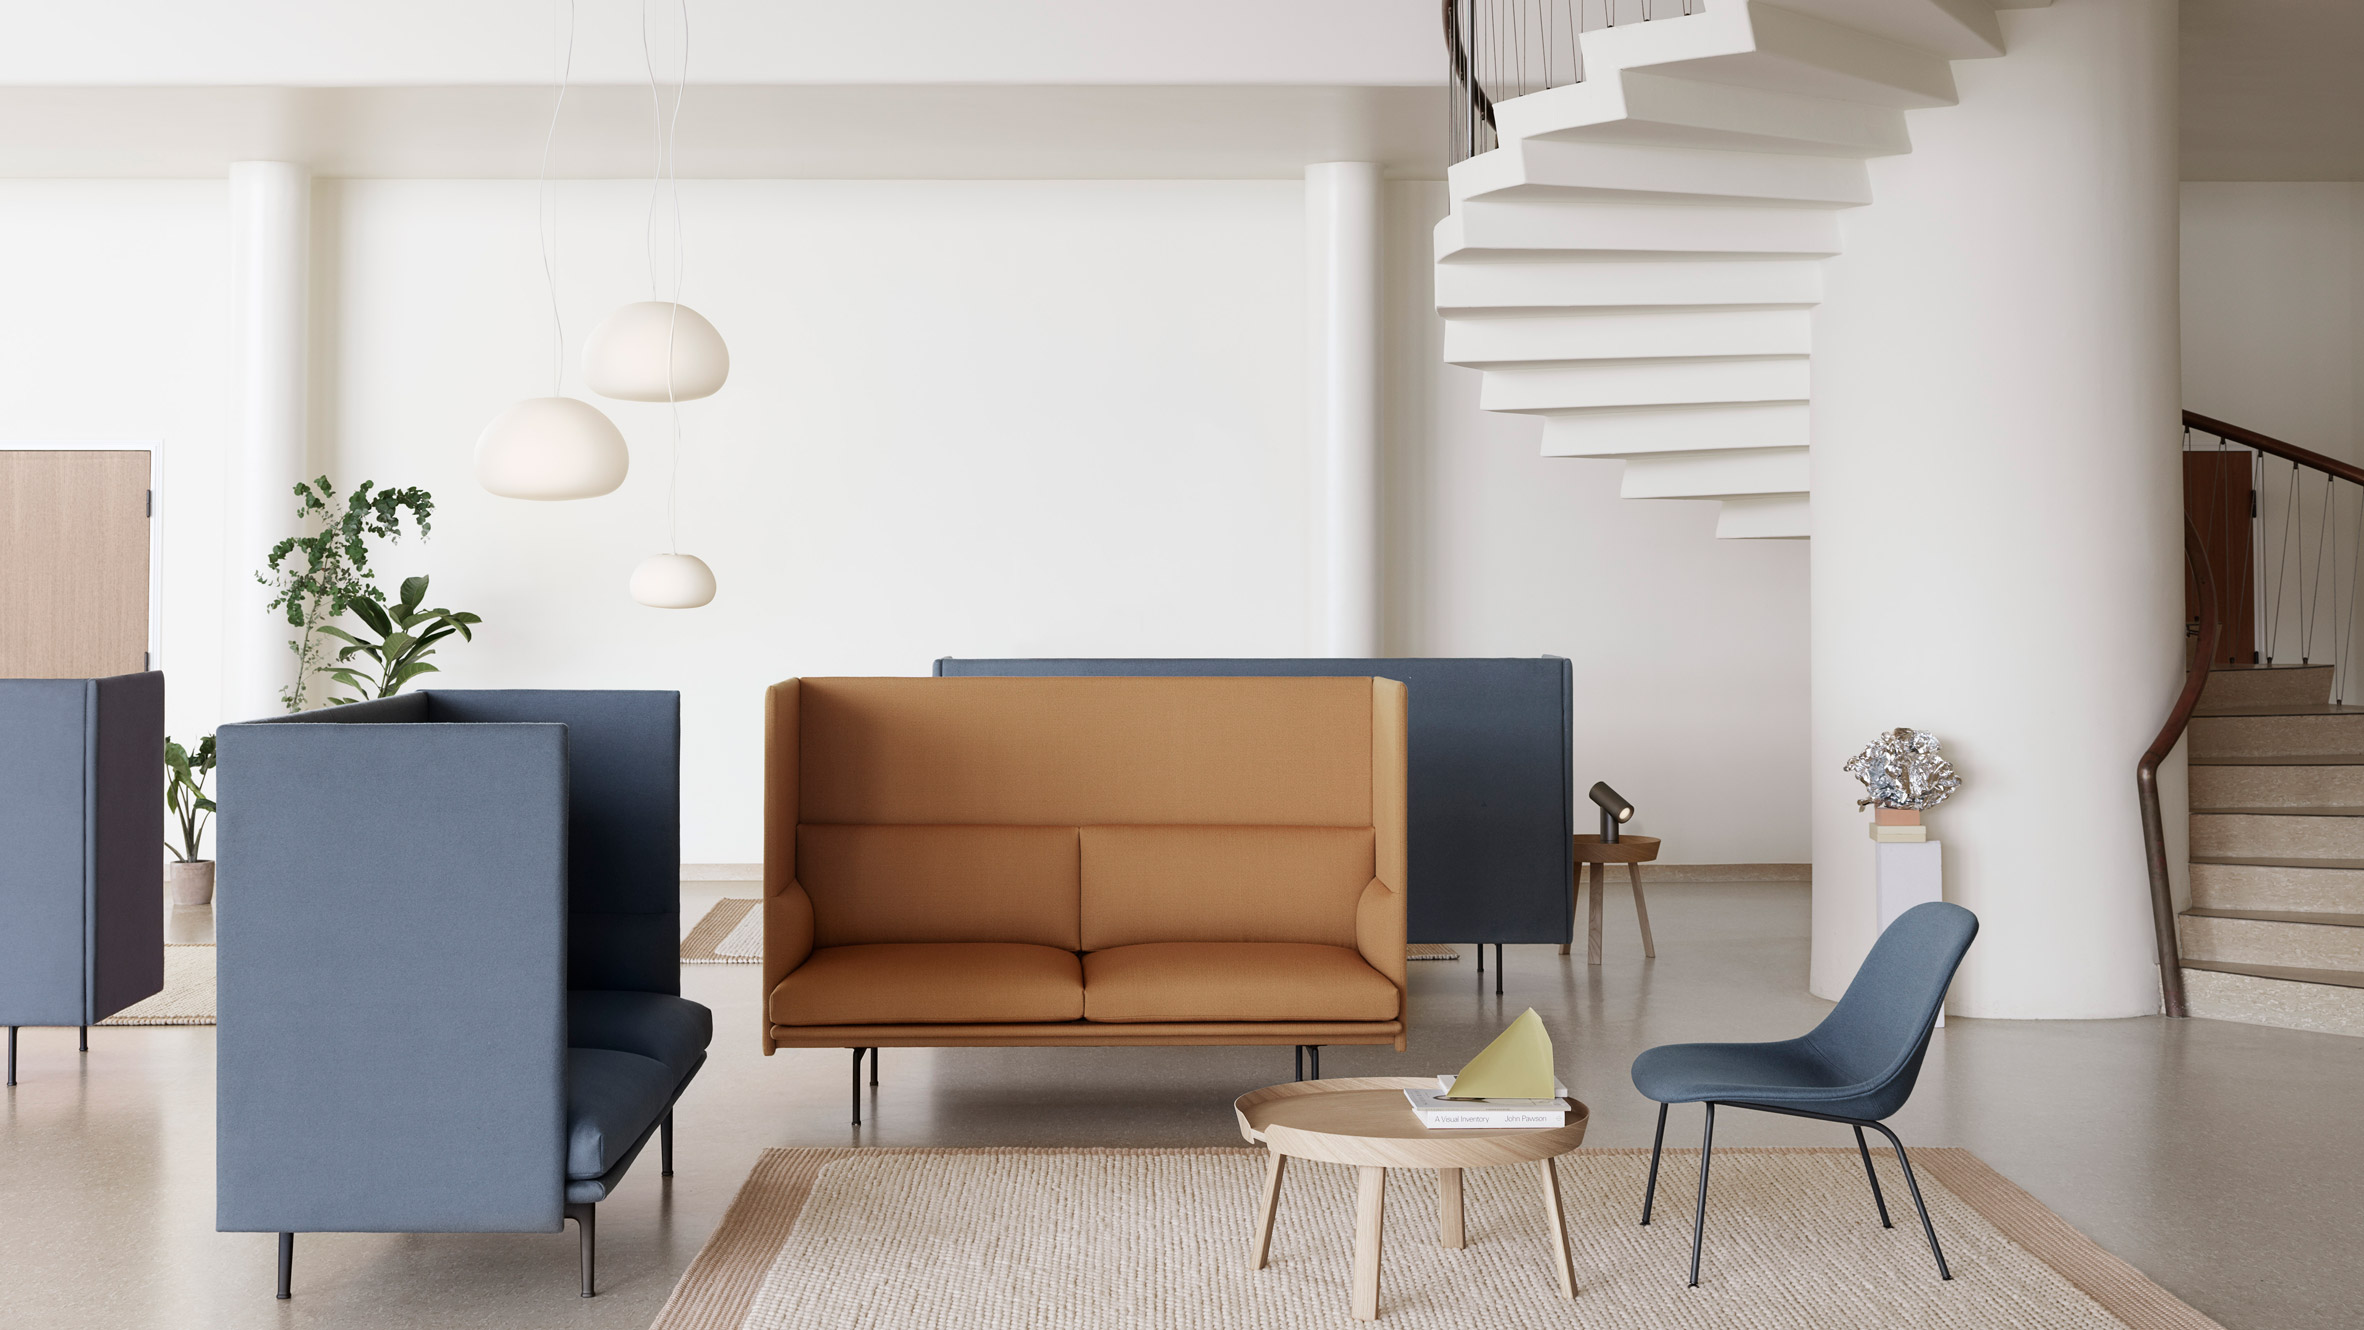 Full Size of Muuto Sofa Sofabord Dba Oslo 2 Seater Compose Review Connect Rest Sale Outline 3 System Xl Leather Modular 1/2 Airy Furniture Tilbud Design Within Reach Sofa Muuto Sofa